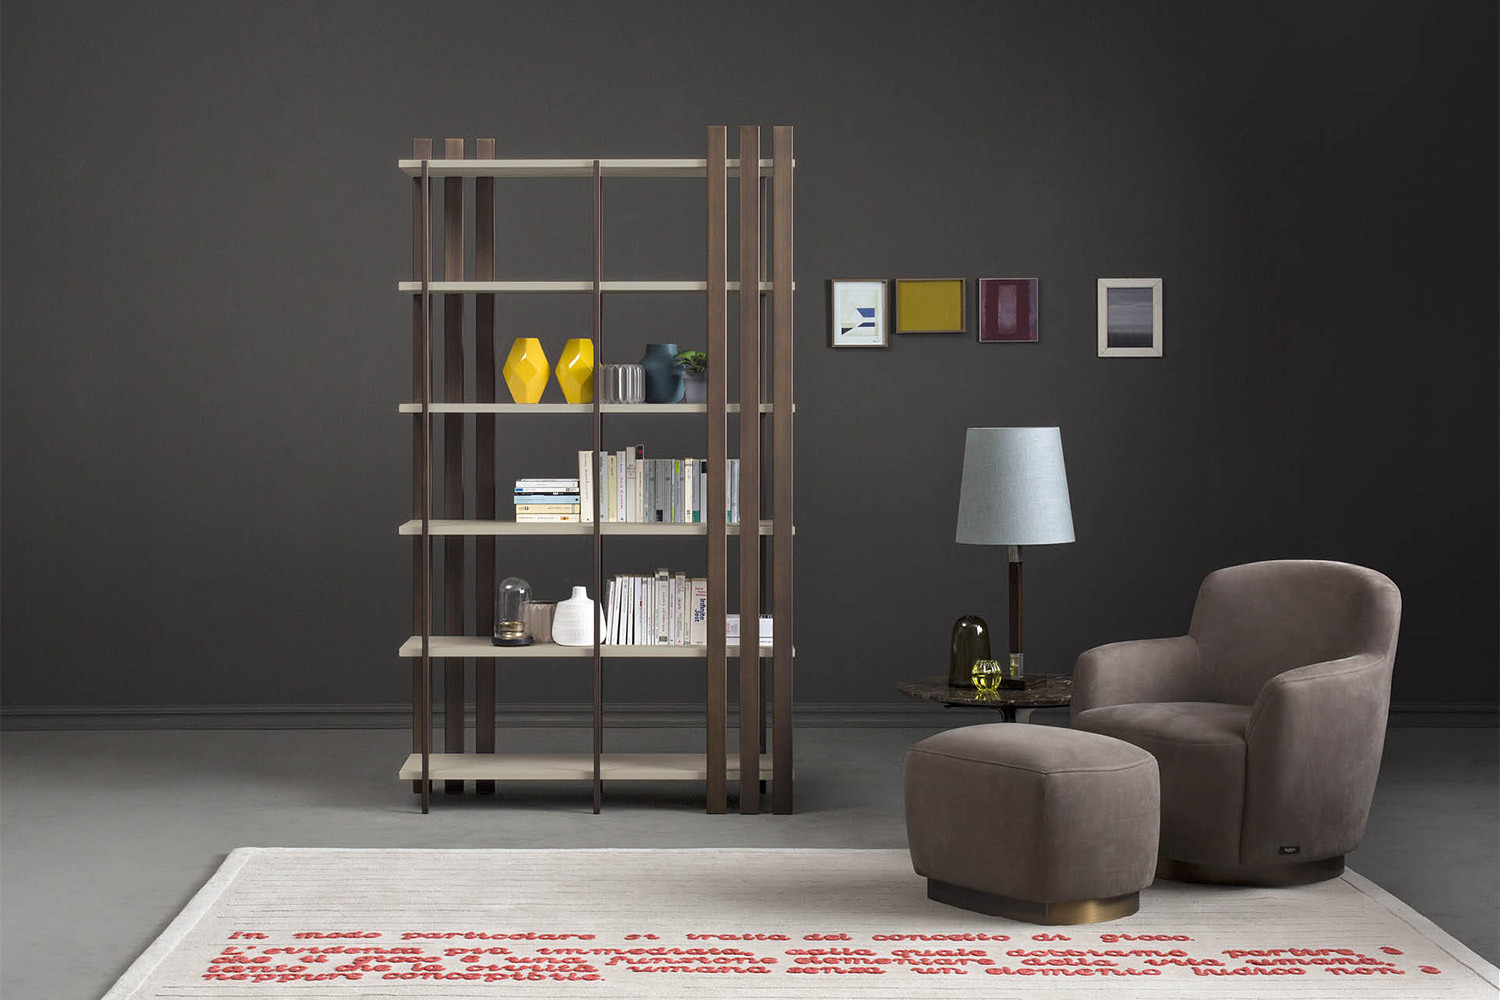 Tall free standing 6-shelf bookcase with walnut or lacquer shelves held together by 10 metal rods